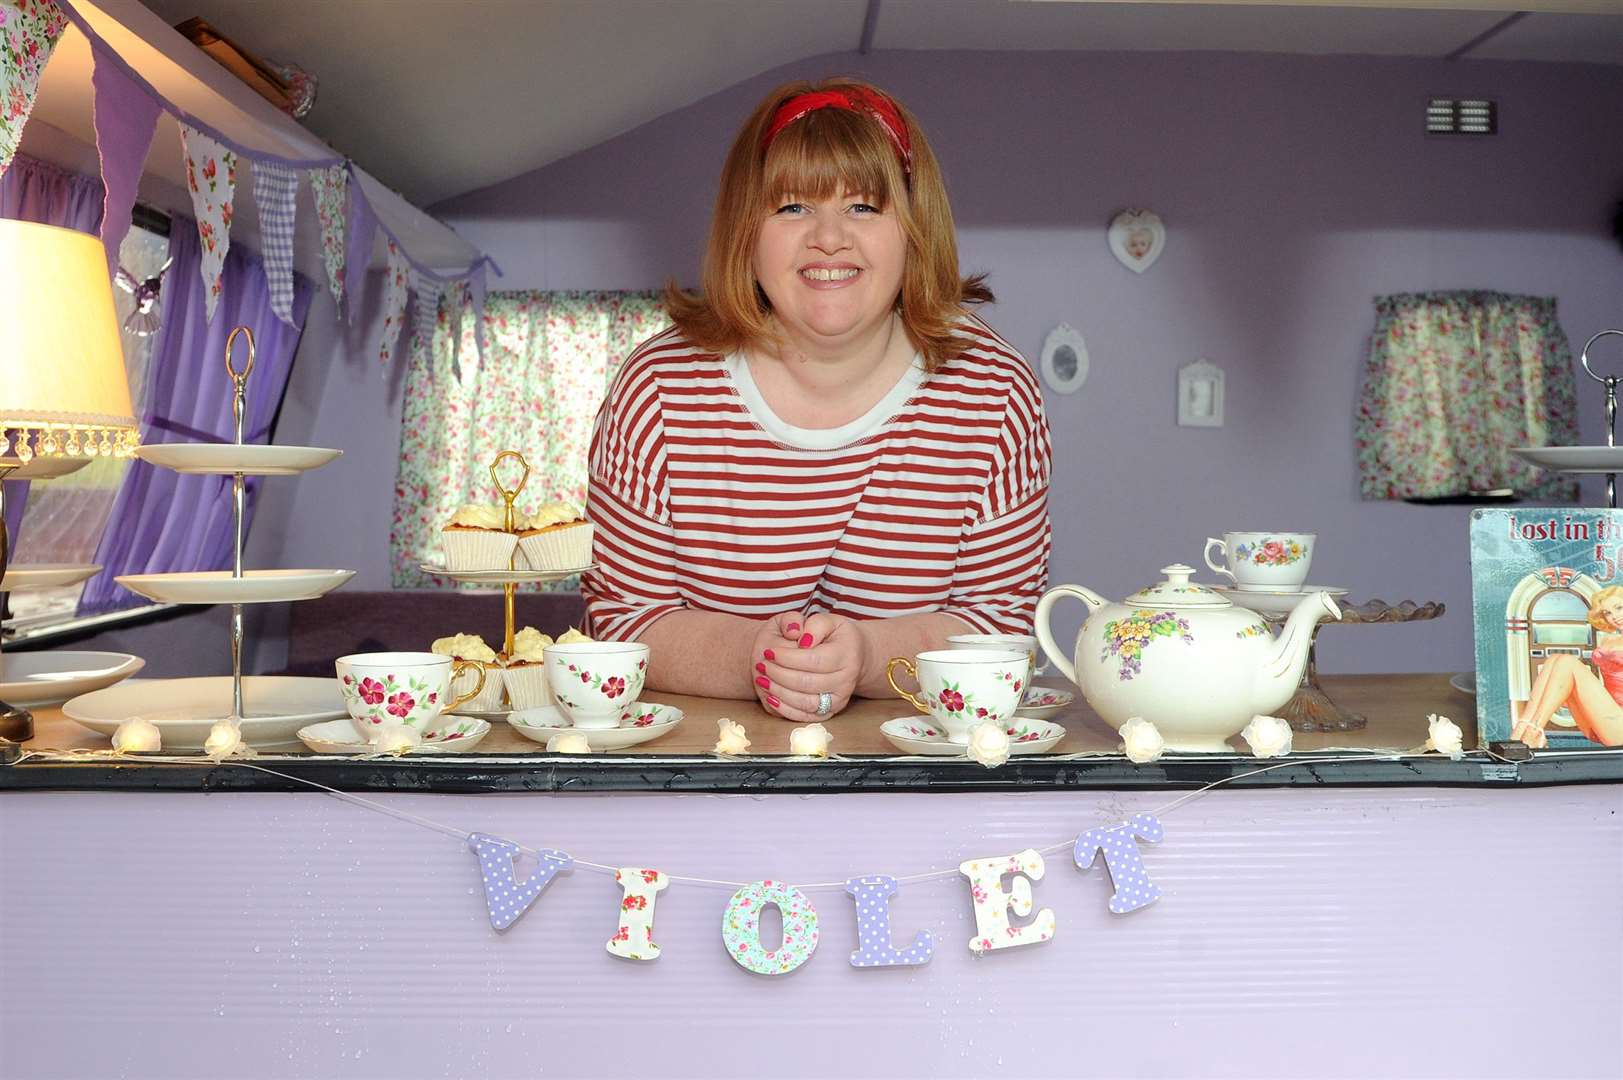 Nicola Littlejohn, who almost died from a brain haemorrhage after giving birth to her son 12 years ago, has fought her way back to health and is now running own business baking cakes and has just launched her own mobile tearoom in a caravan.....PICTURE: Mecha Morton... (11751248)